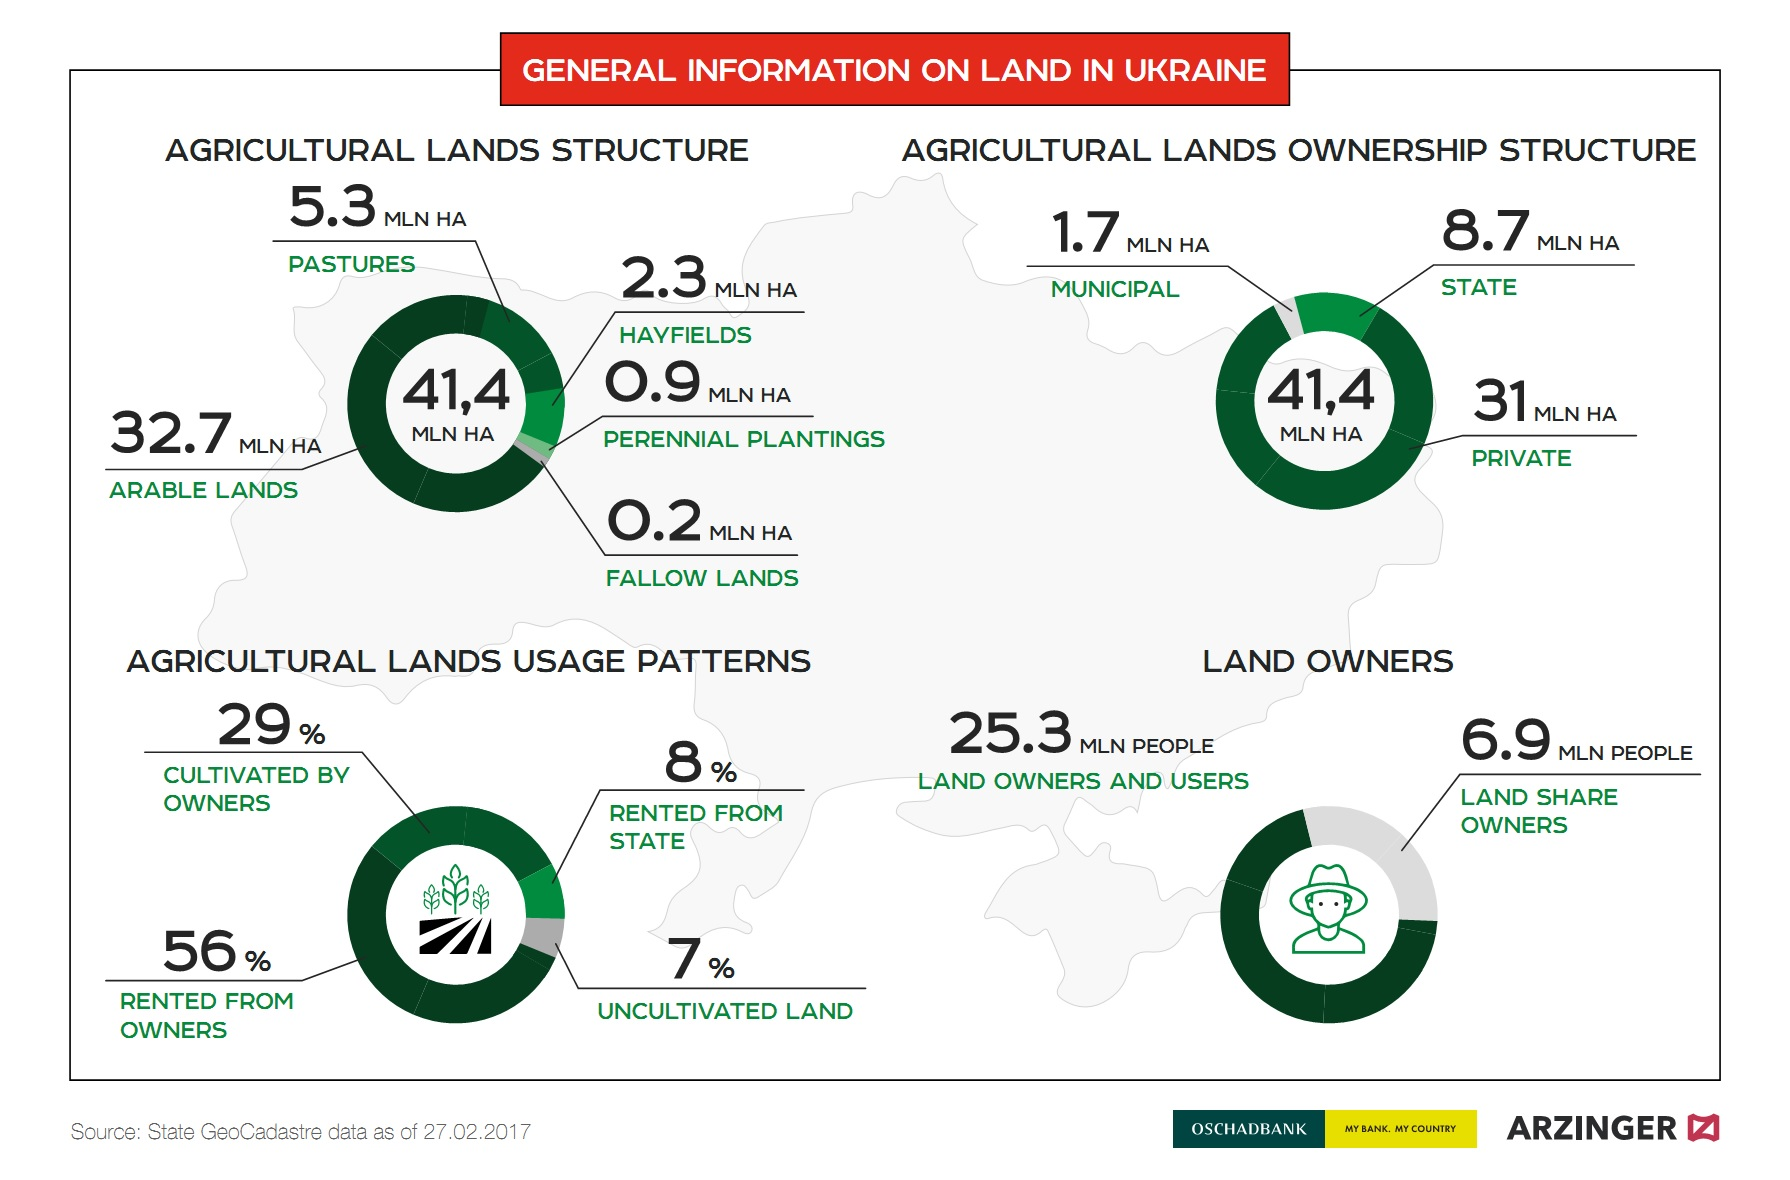 General information on land in Ukraine (click for full resolution)